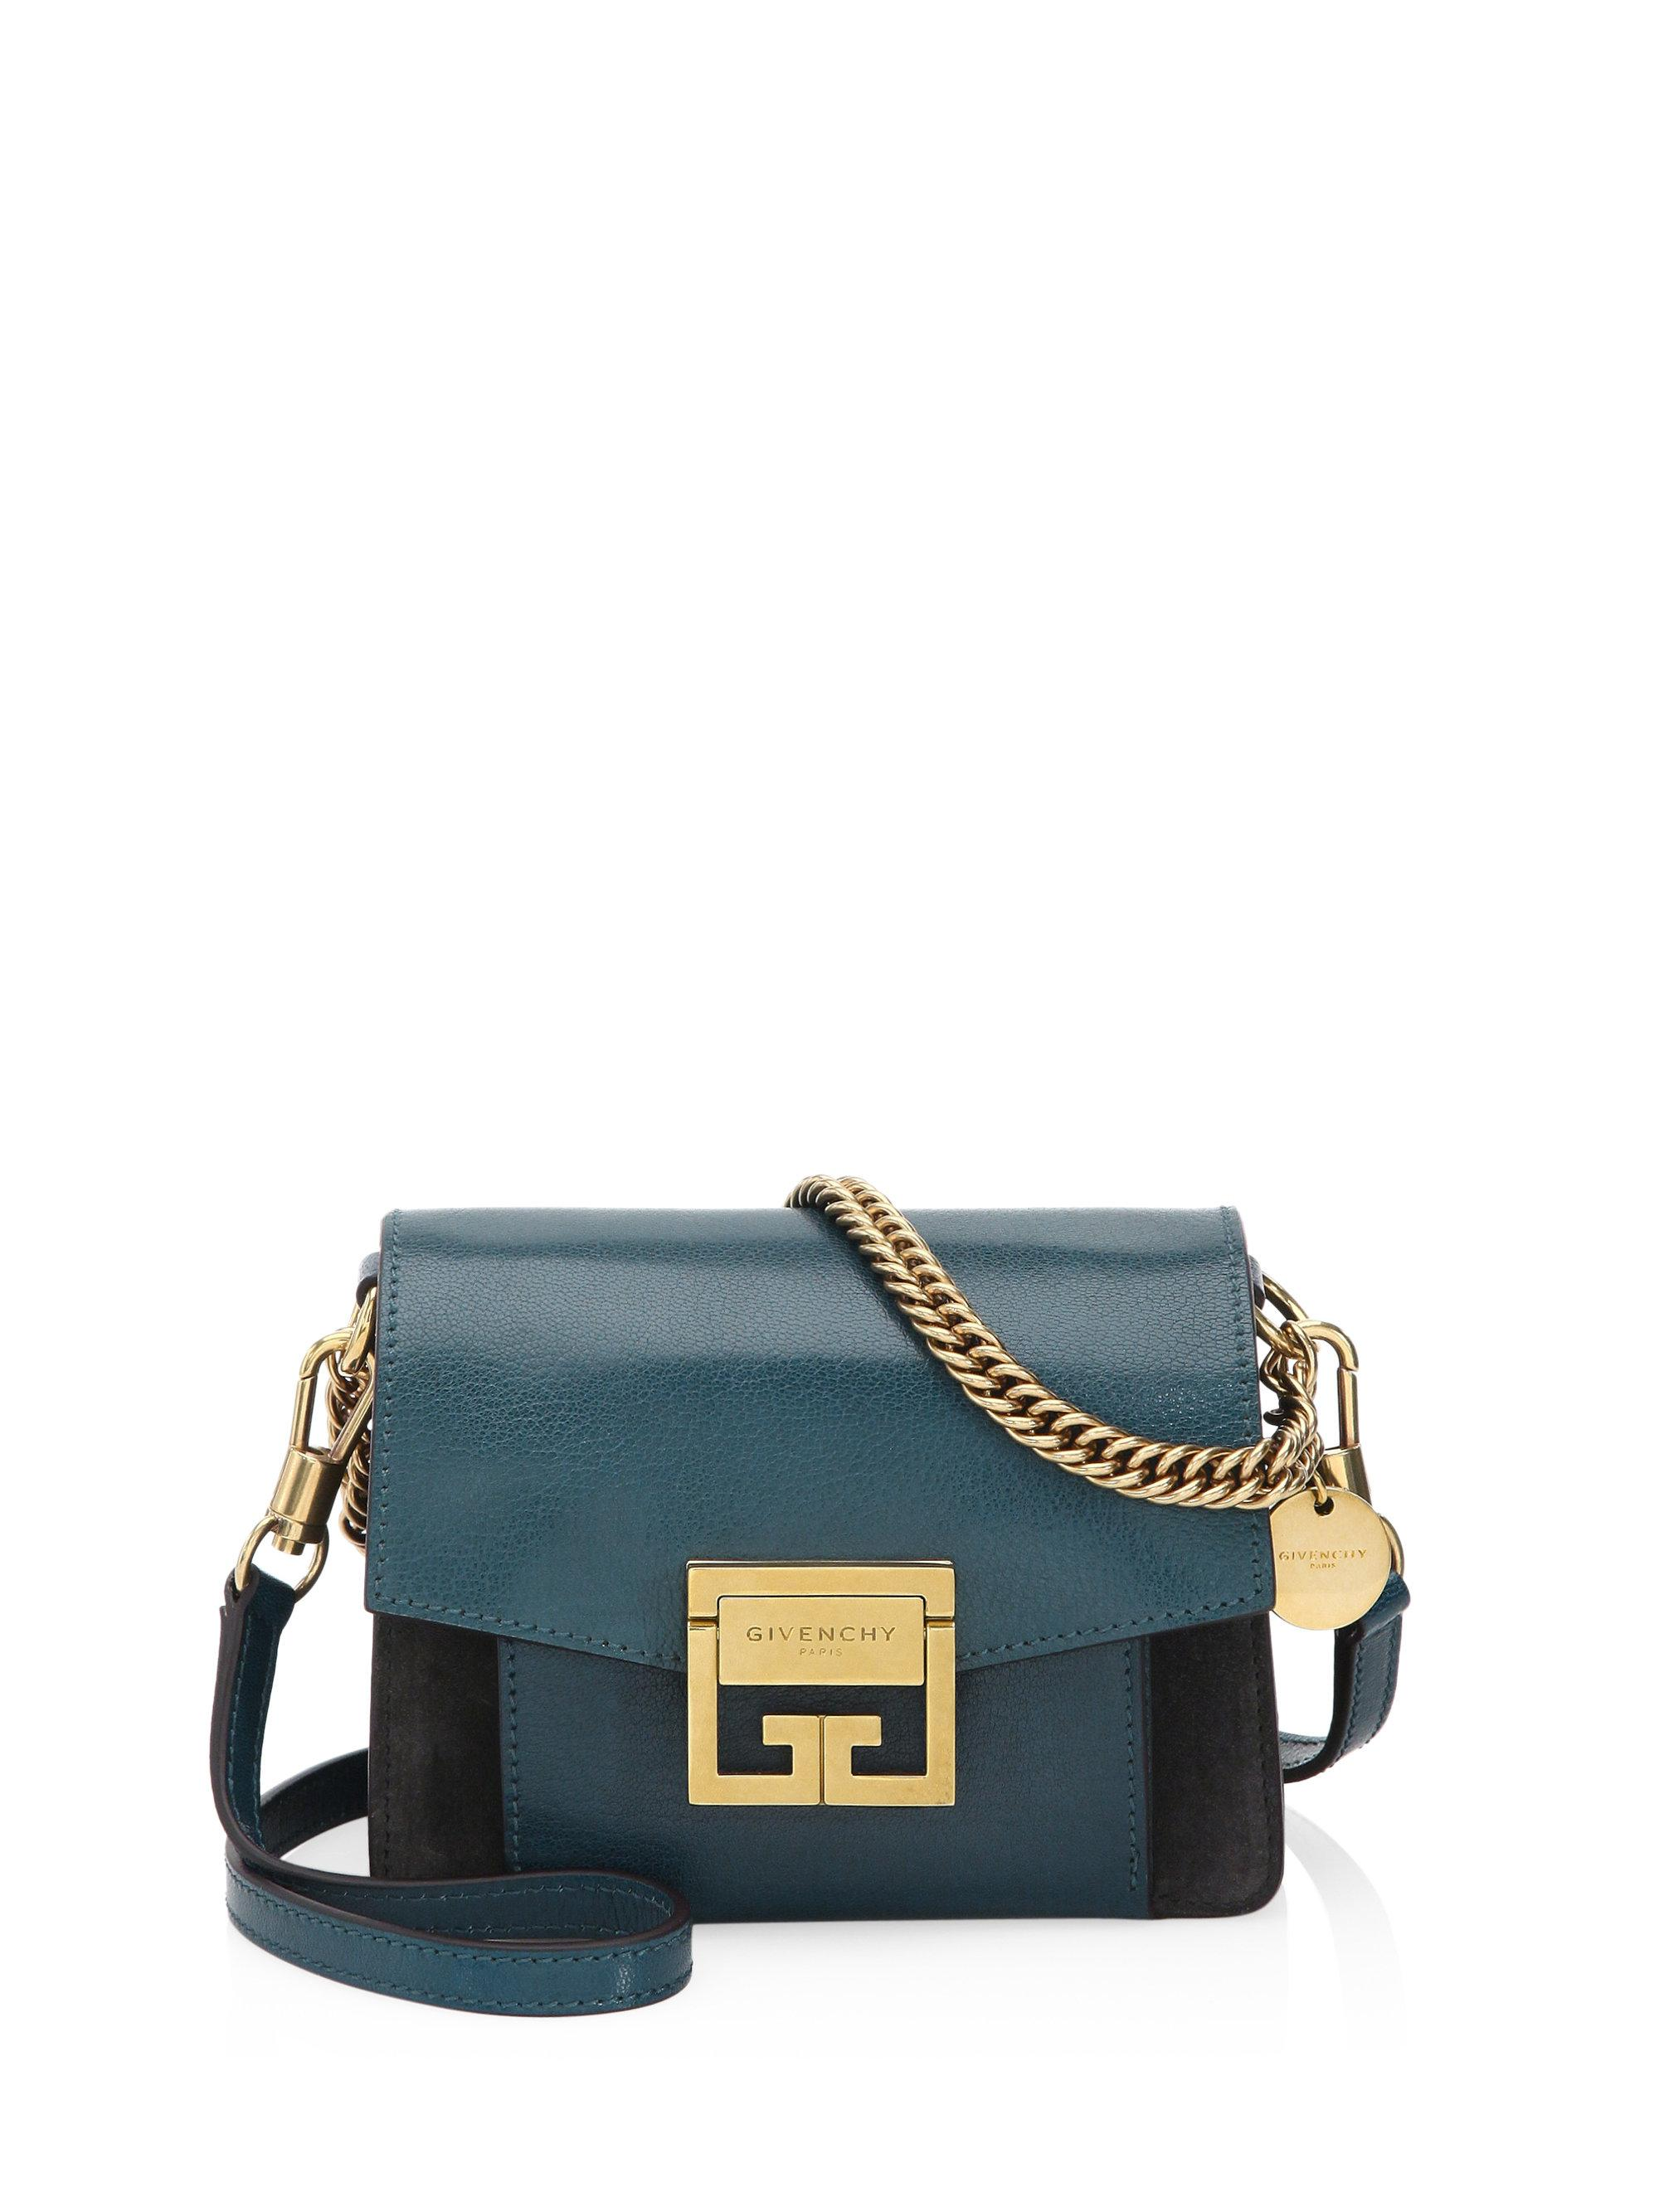 Sale Release Dates Mino GV3 shoulder bag - Blue Givenchy High Quality Buy Online Finishline Cheap Price Cheap Sale Browse LwEPP